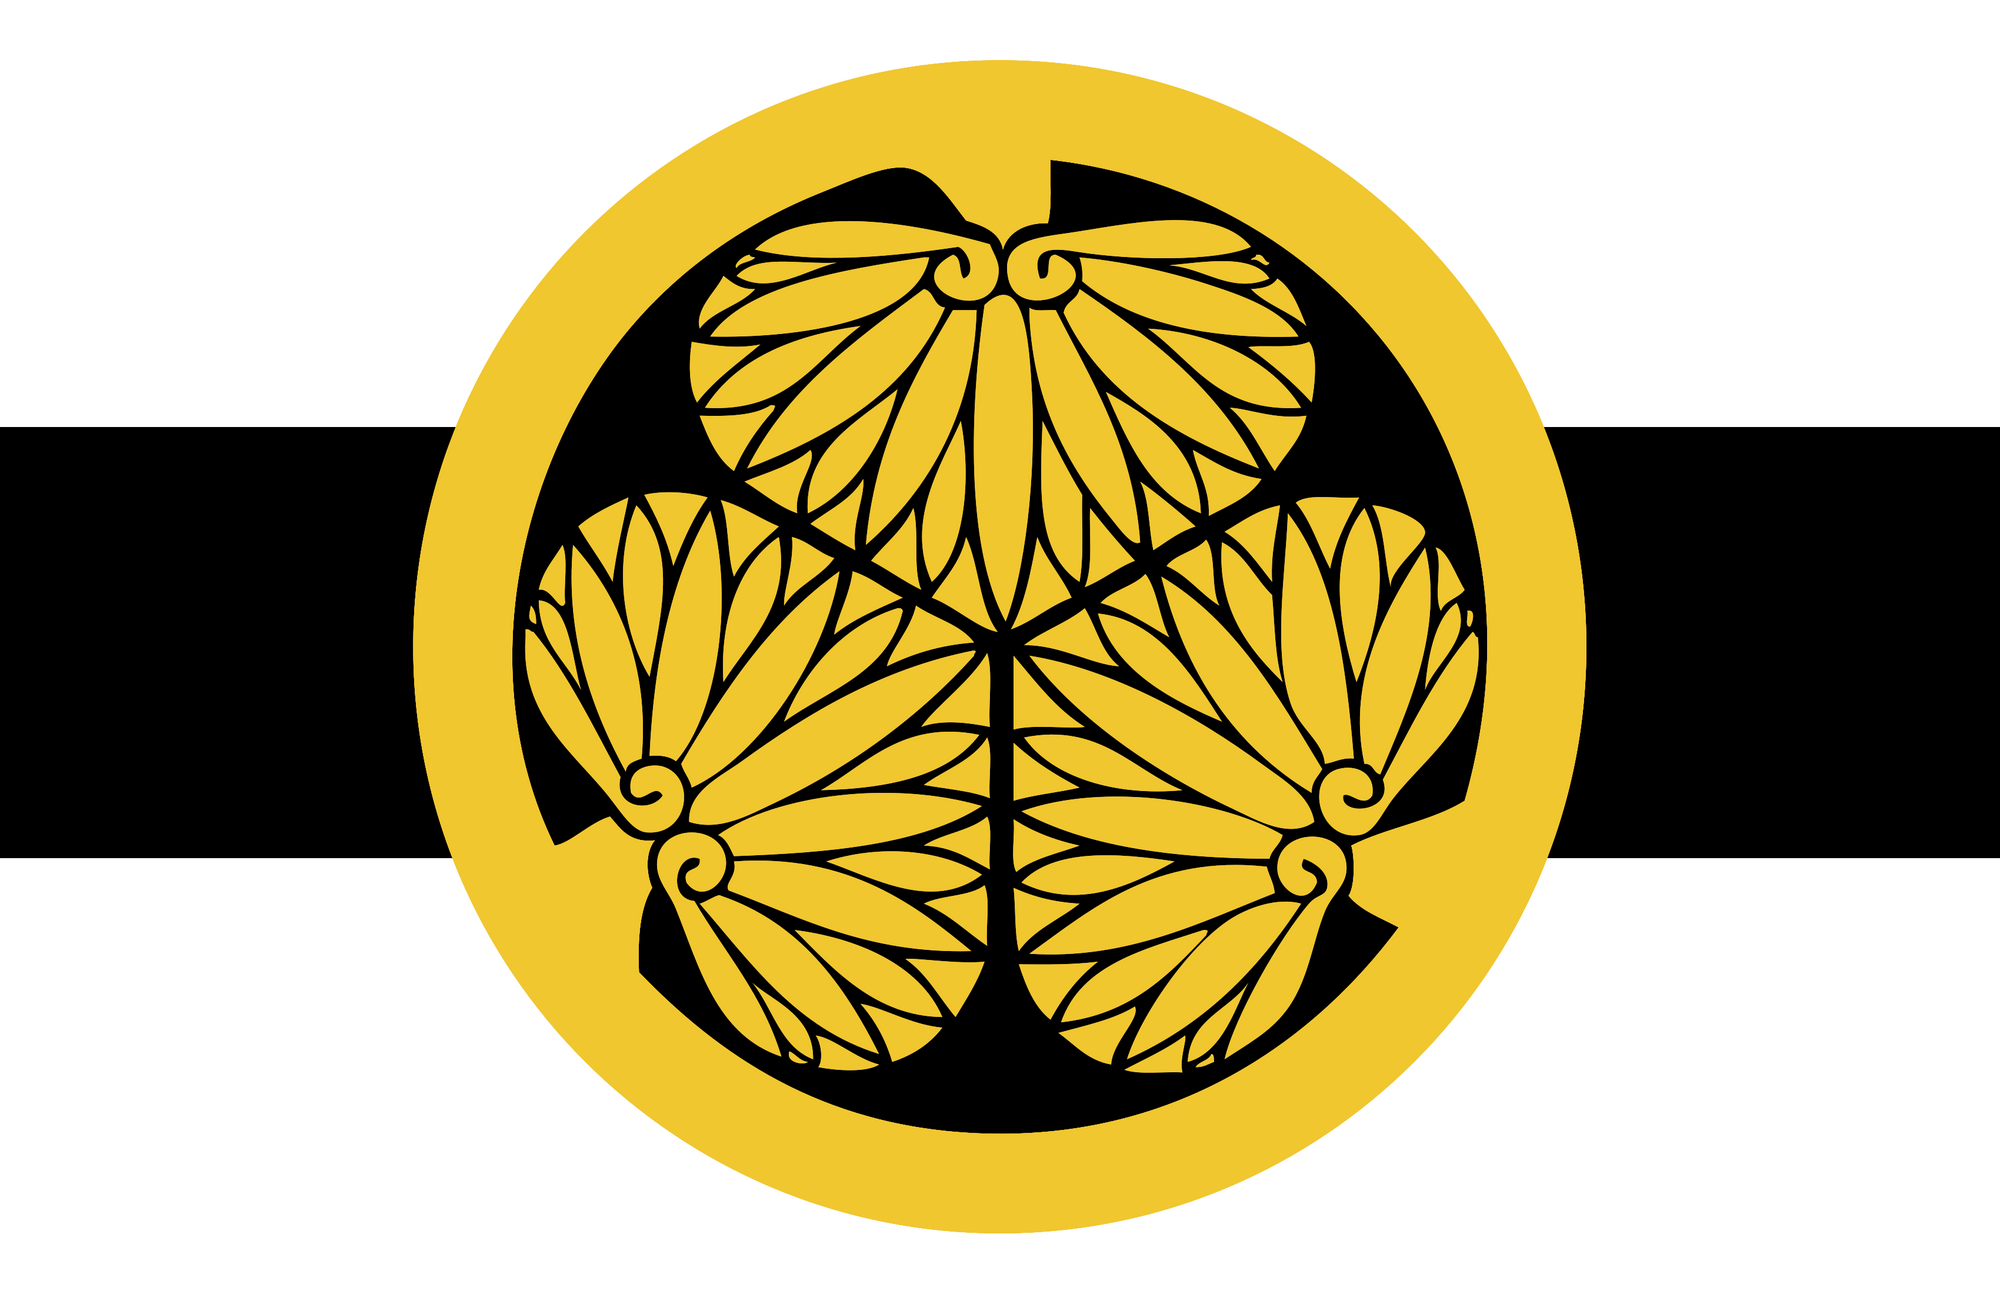 a history of the tokugawa shogunate in japan How did japan's tokugawa shogunate come to an end the entry of the us fleet  into tokyo bay in 1853 and the events that followed exposed the shogunate's.